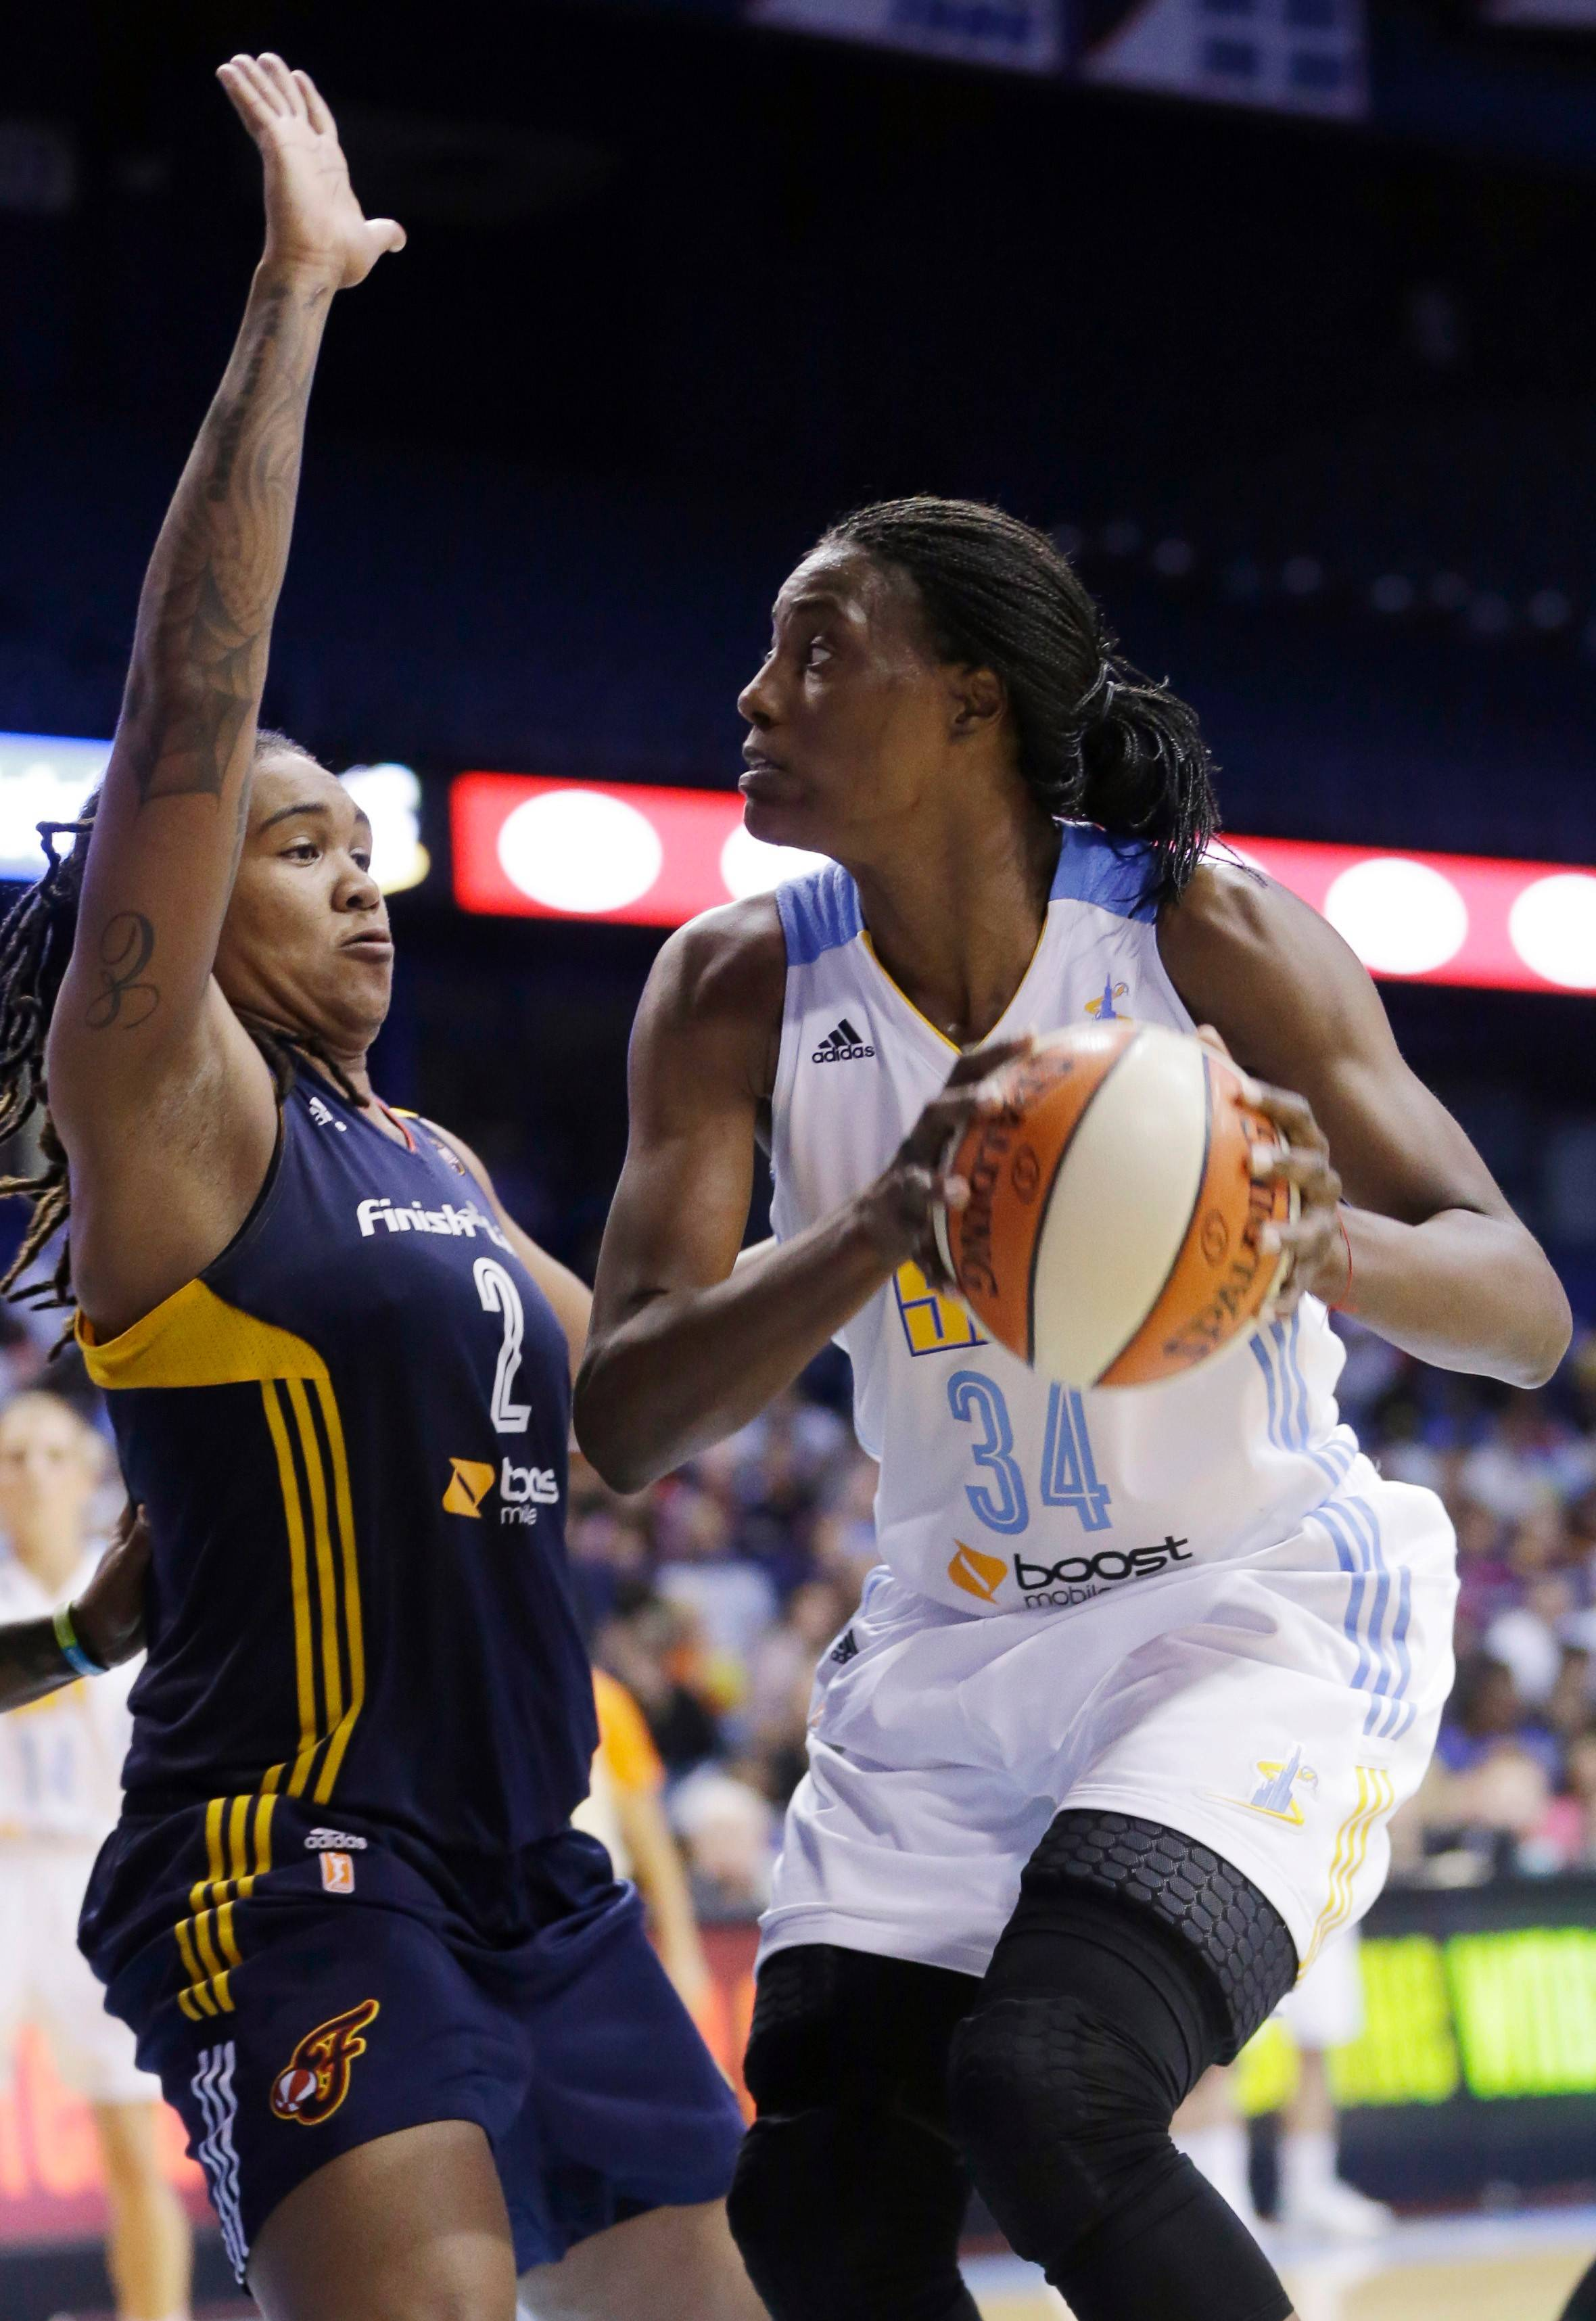 For Sky's Fowles, it's time to slow down